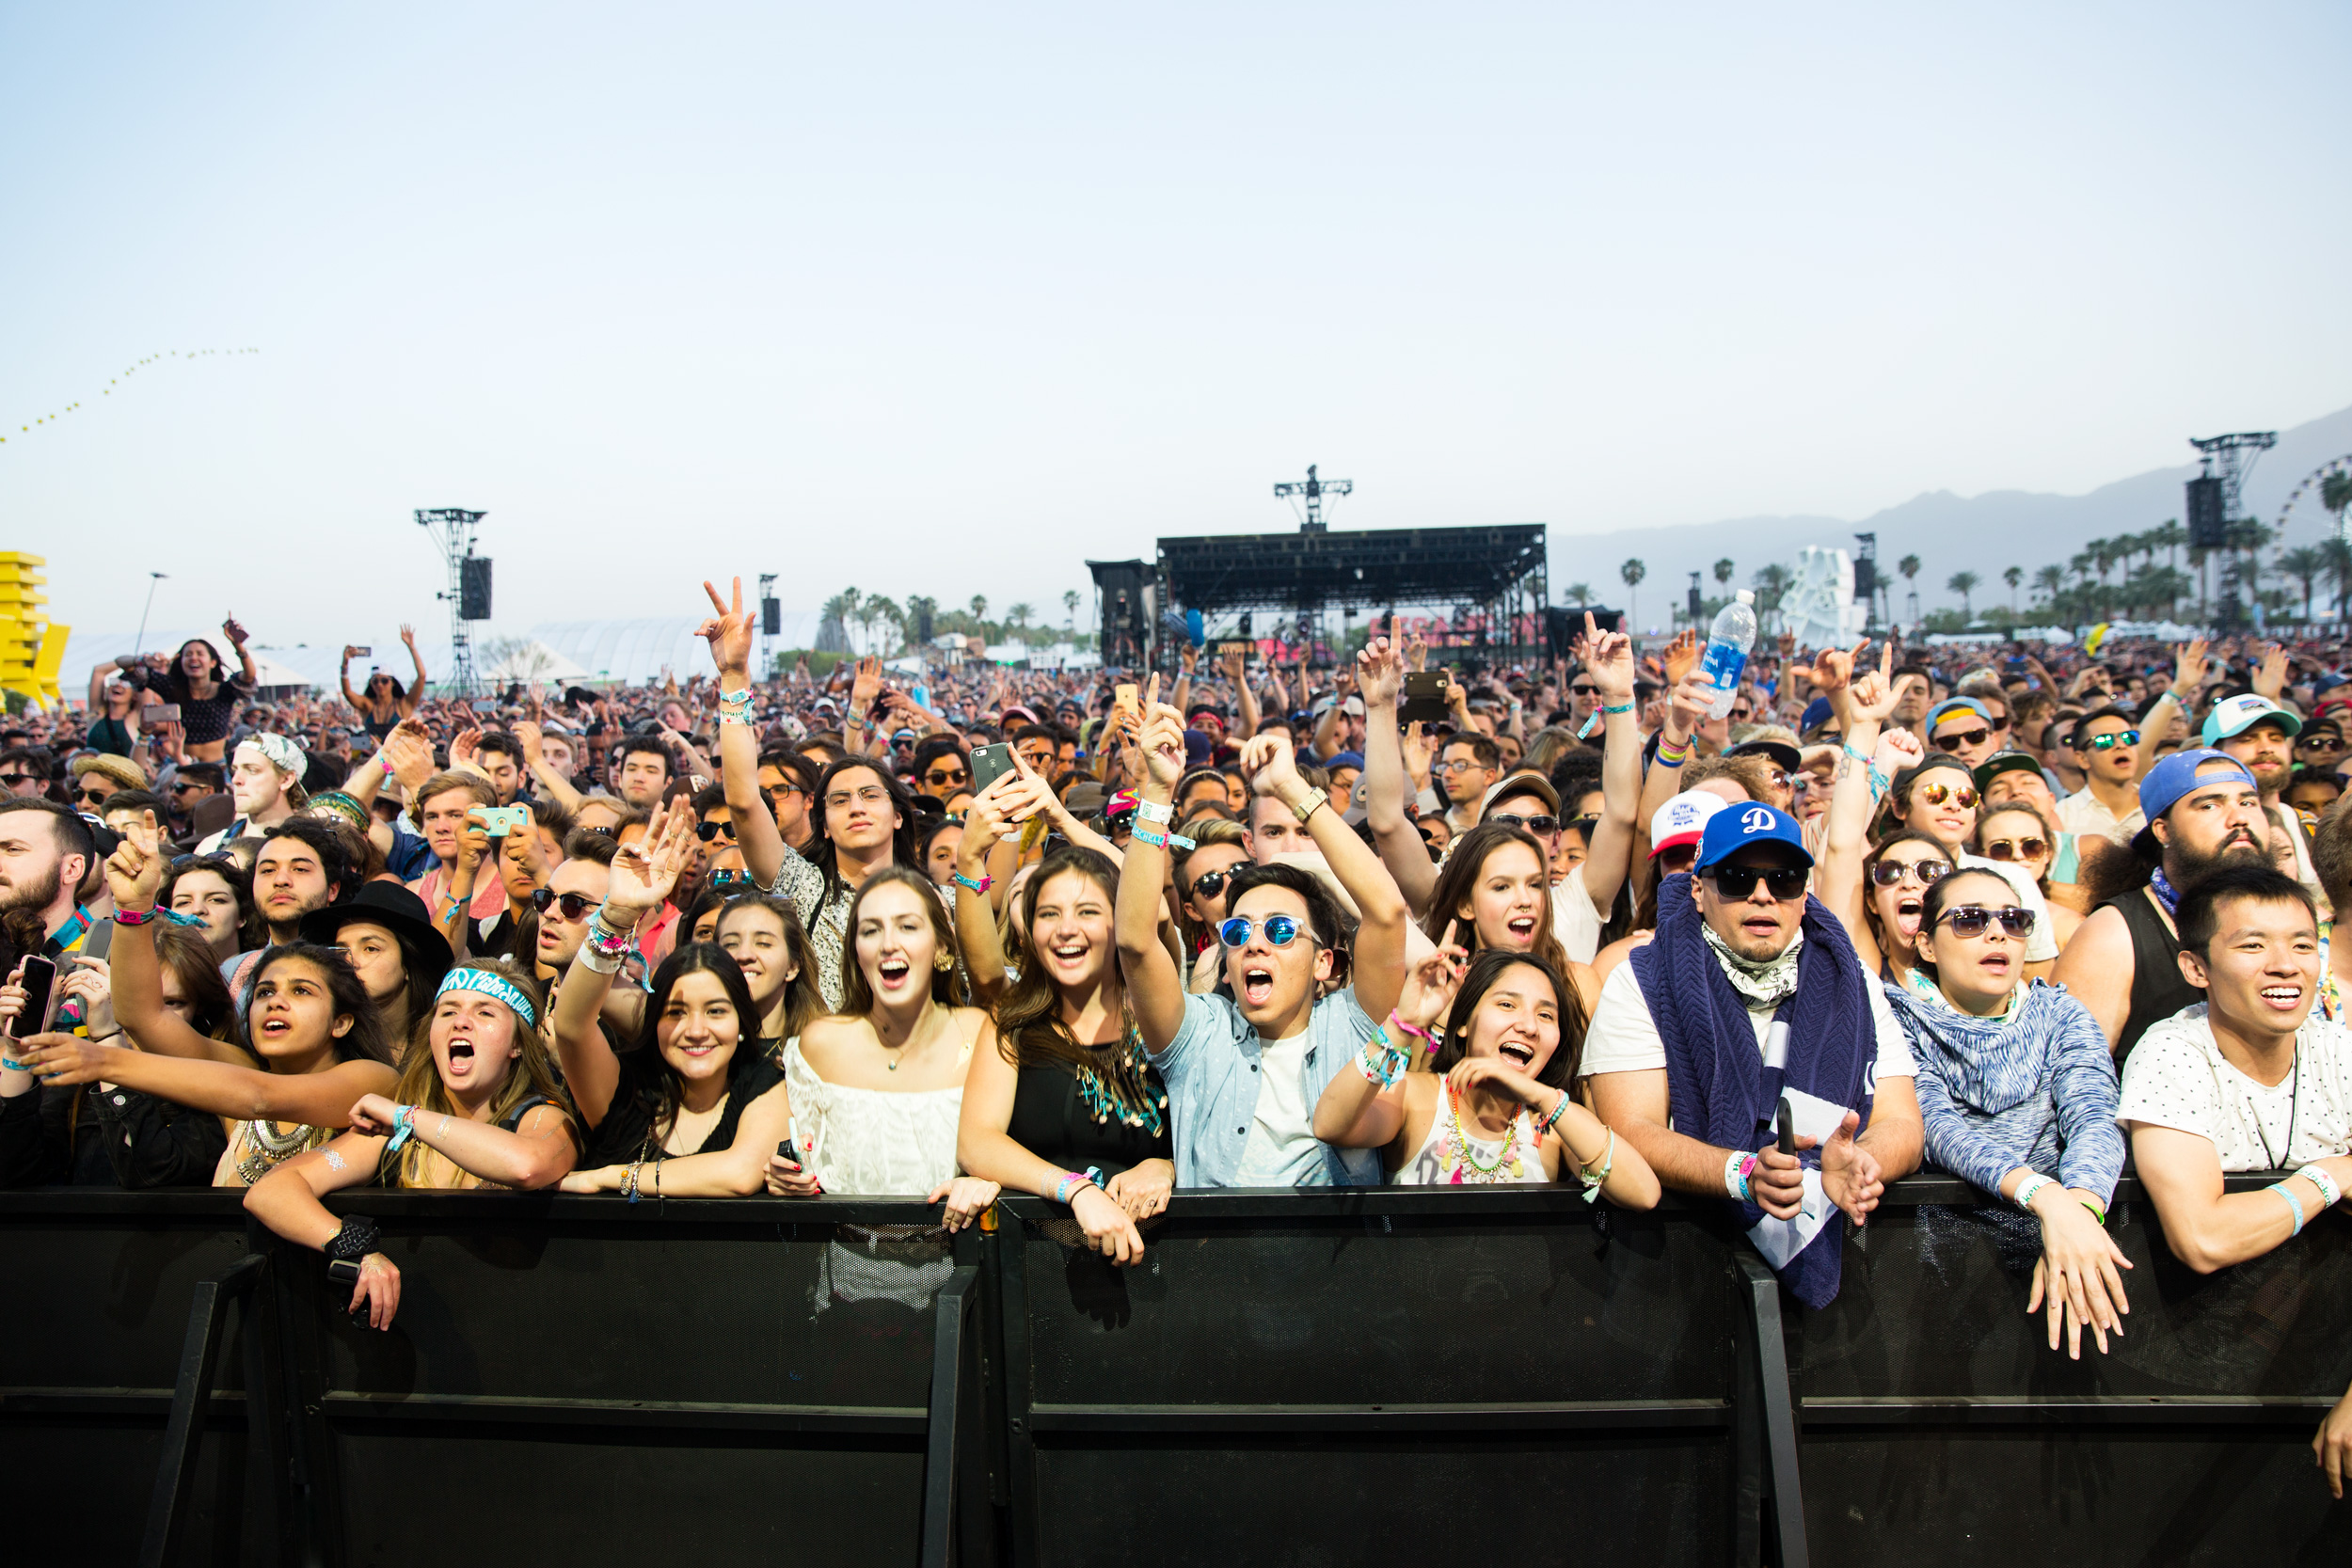 A screaming audience listens to a performance by Of Monsters and Men on the Coachella Stage on the first night of Weekend 1.  Originally published by The Wall Street Journal, as part of their story  ' What Artists Take to Coachella'